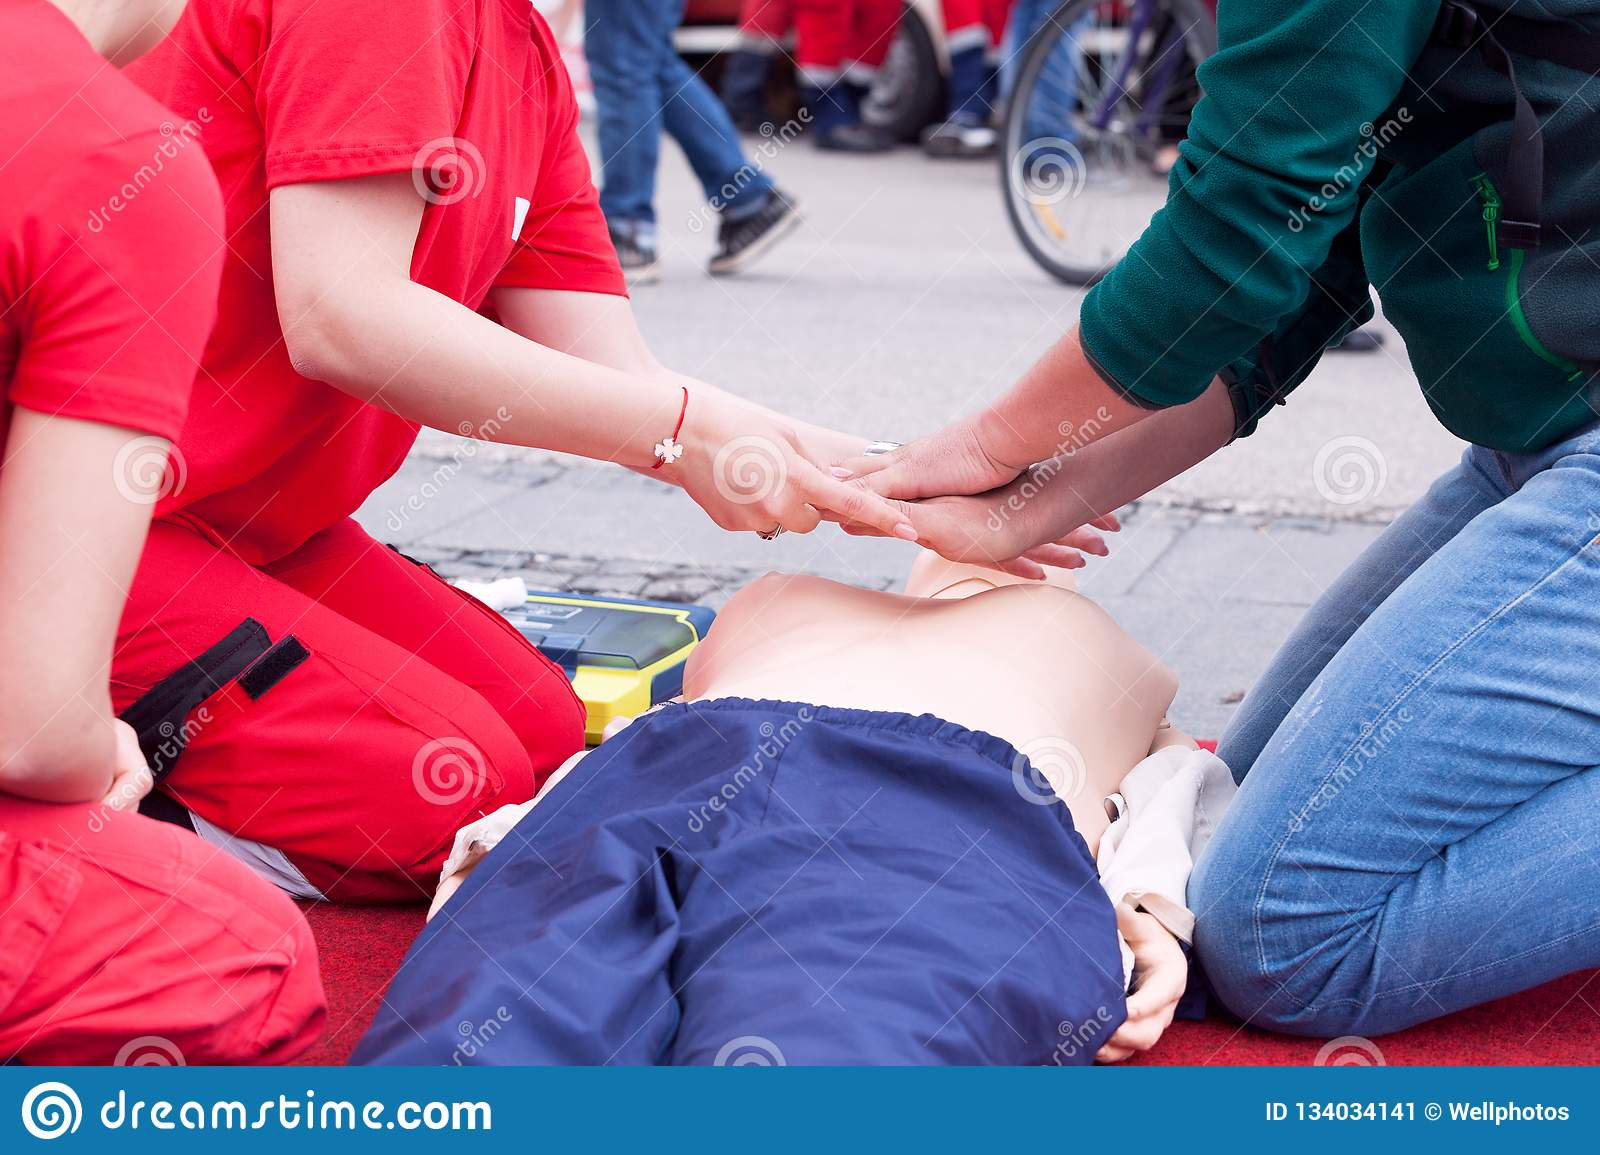 1bba56b6d1 Learning cardiopulmonary resuscitation medical technique, CPR practice on a  dummy during first aid training